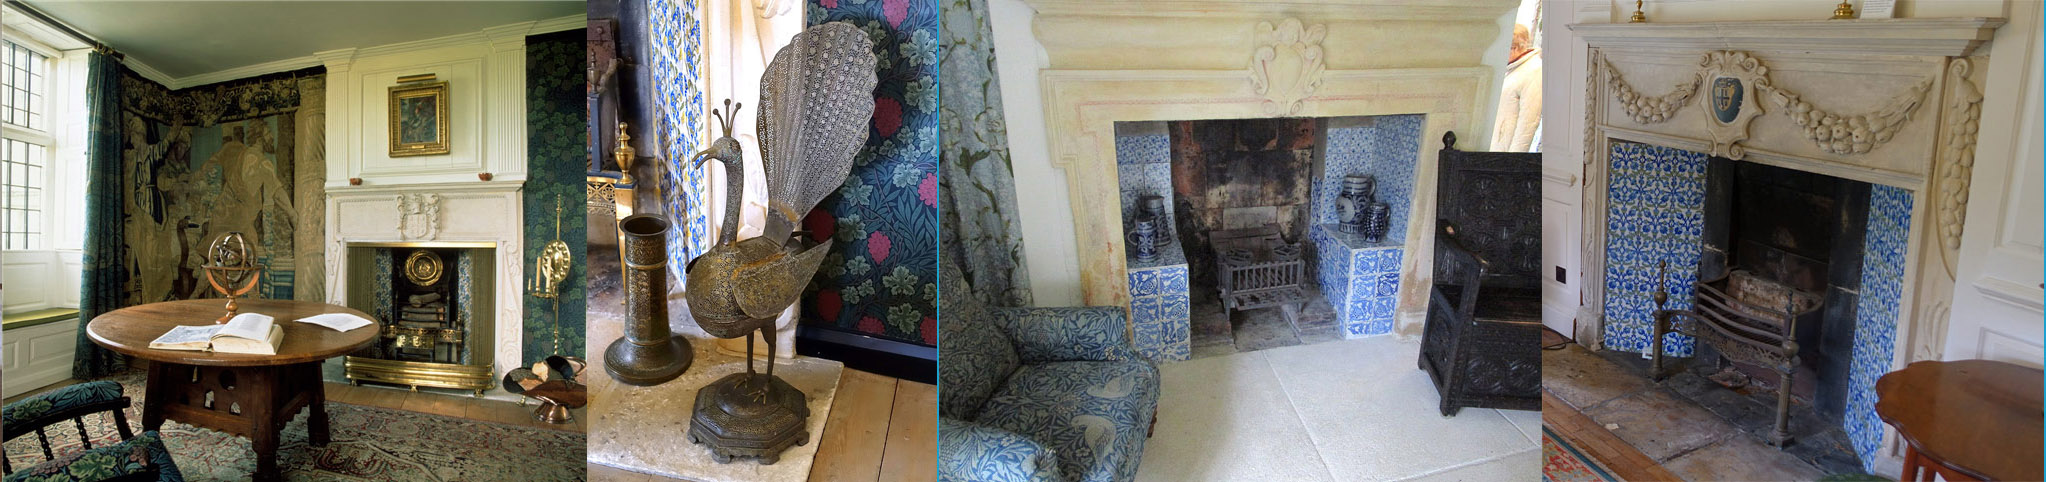 Kelmscott Manor Fireplaces. From left: Tapestry Room, Green Drawing Room, White Paneled Drawing Room